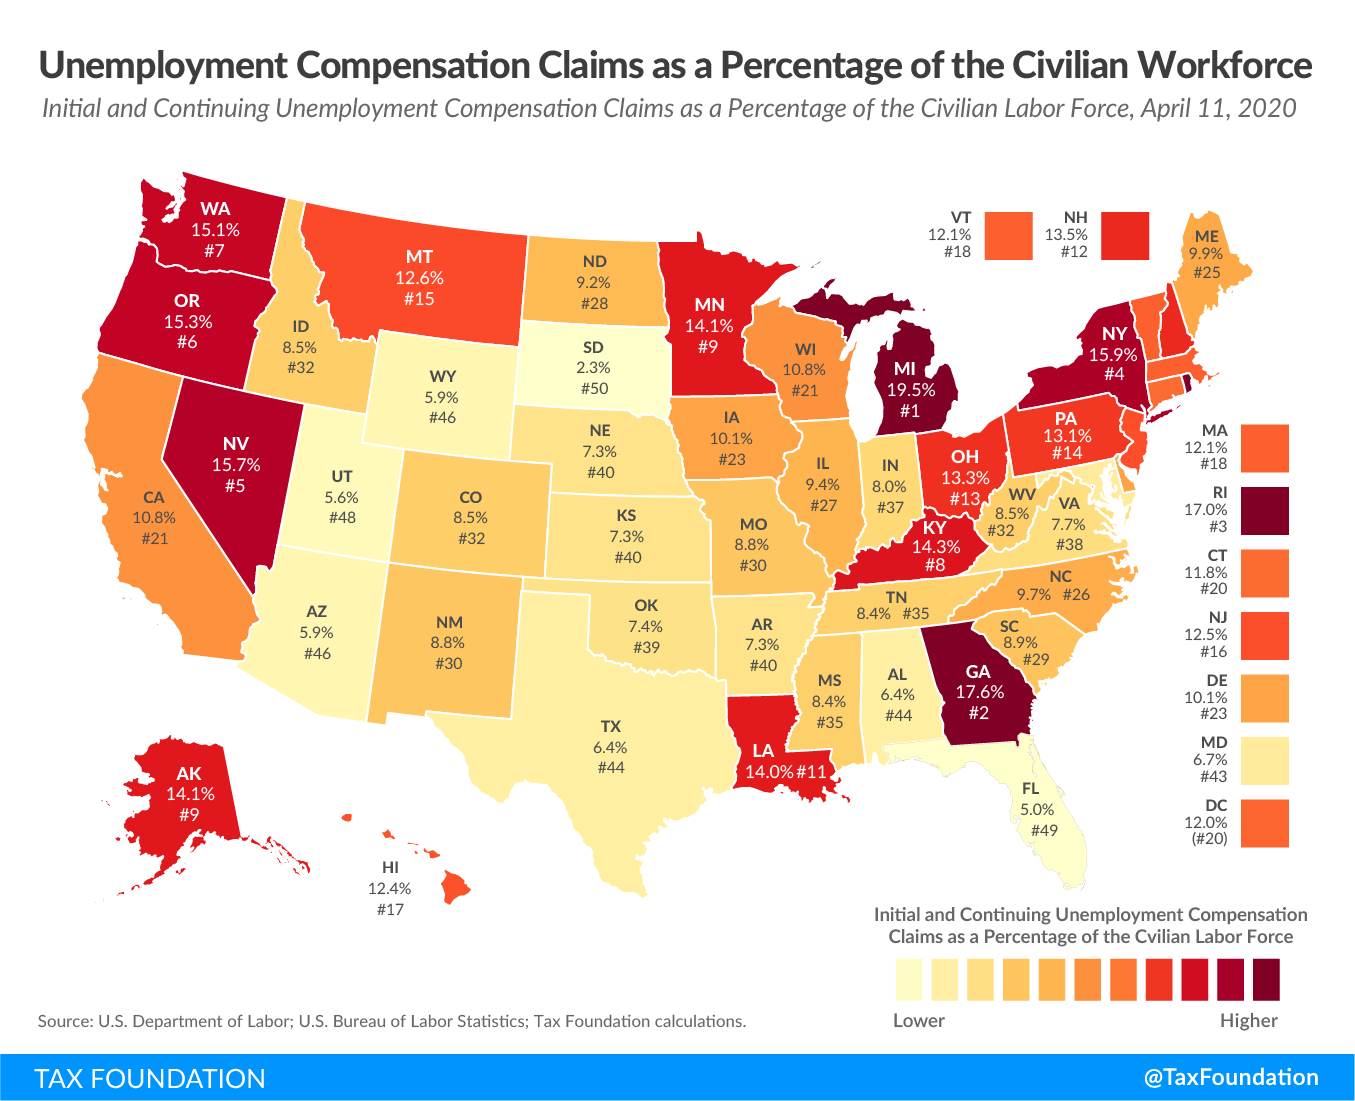 Approximately 10.6 percent of the U.S. civilian labor force has now applied for or is receiving unemployment compensation benefits, Number of jobless claims, us unemployment rate by state